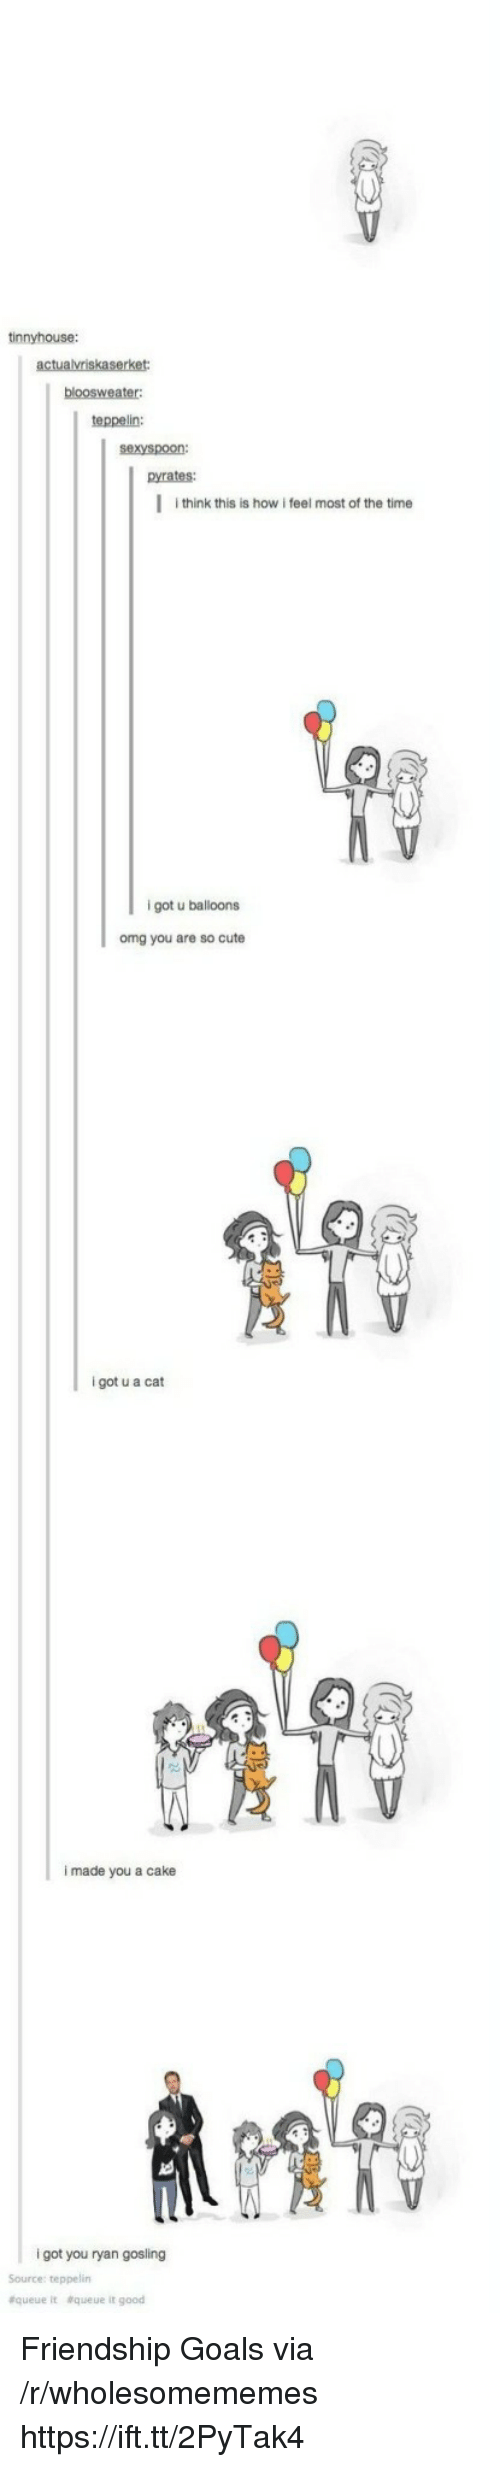 Cute, Goals, and Omg: tinnyhouse:  teppelin:  sexyspoon:  pyrates:  I think this is how i feel most of the time  9  igot u balloons  omg you are so cute  i got u a cat  i made you a cake  i got you ryan gosling  Source: teppelin  &queue  &queue it good Friendship Goals via /r/wholesomememes https://ift.tt/2PyTak4